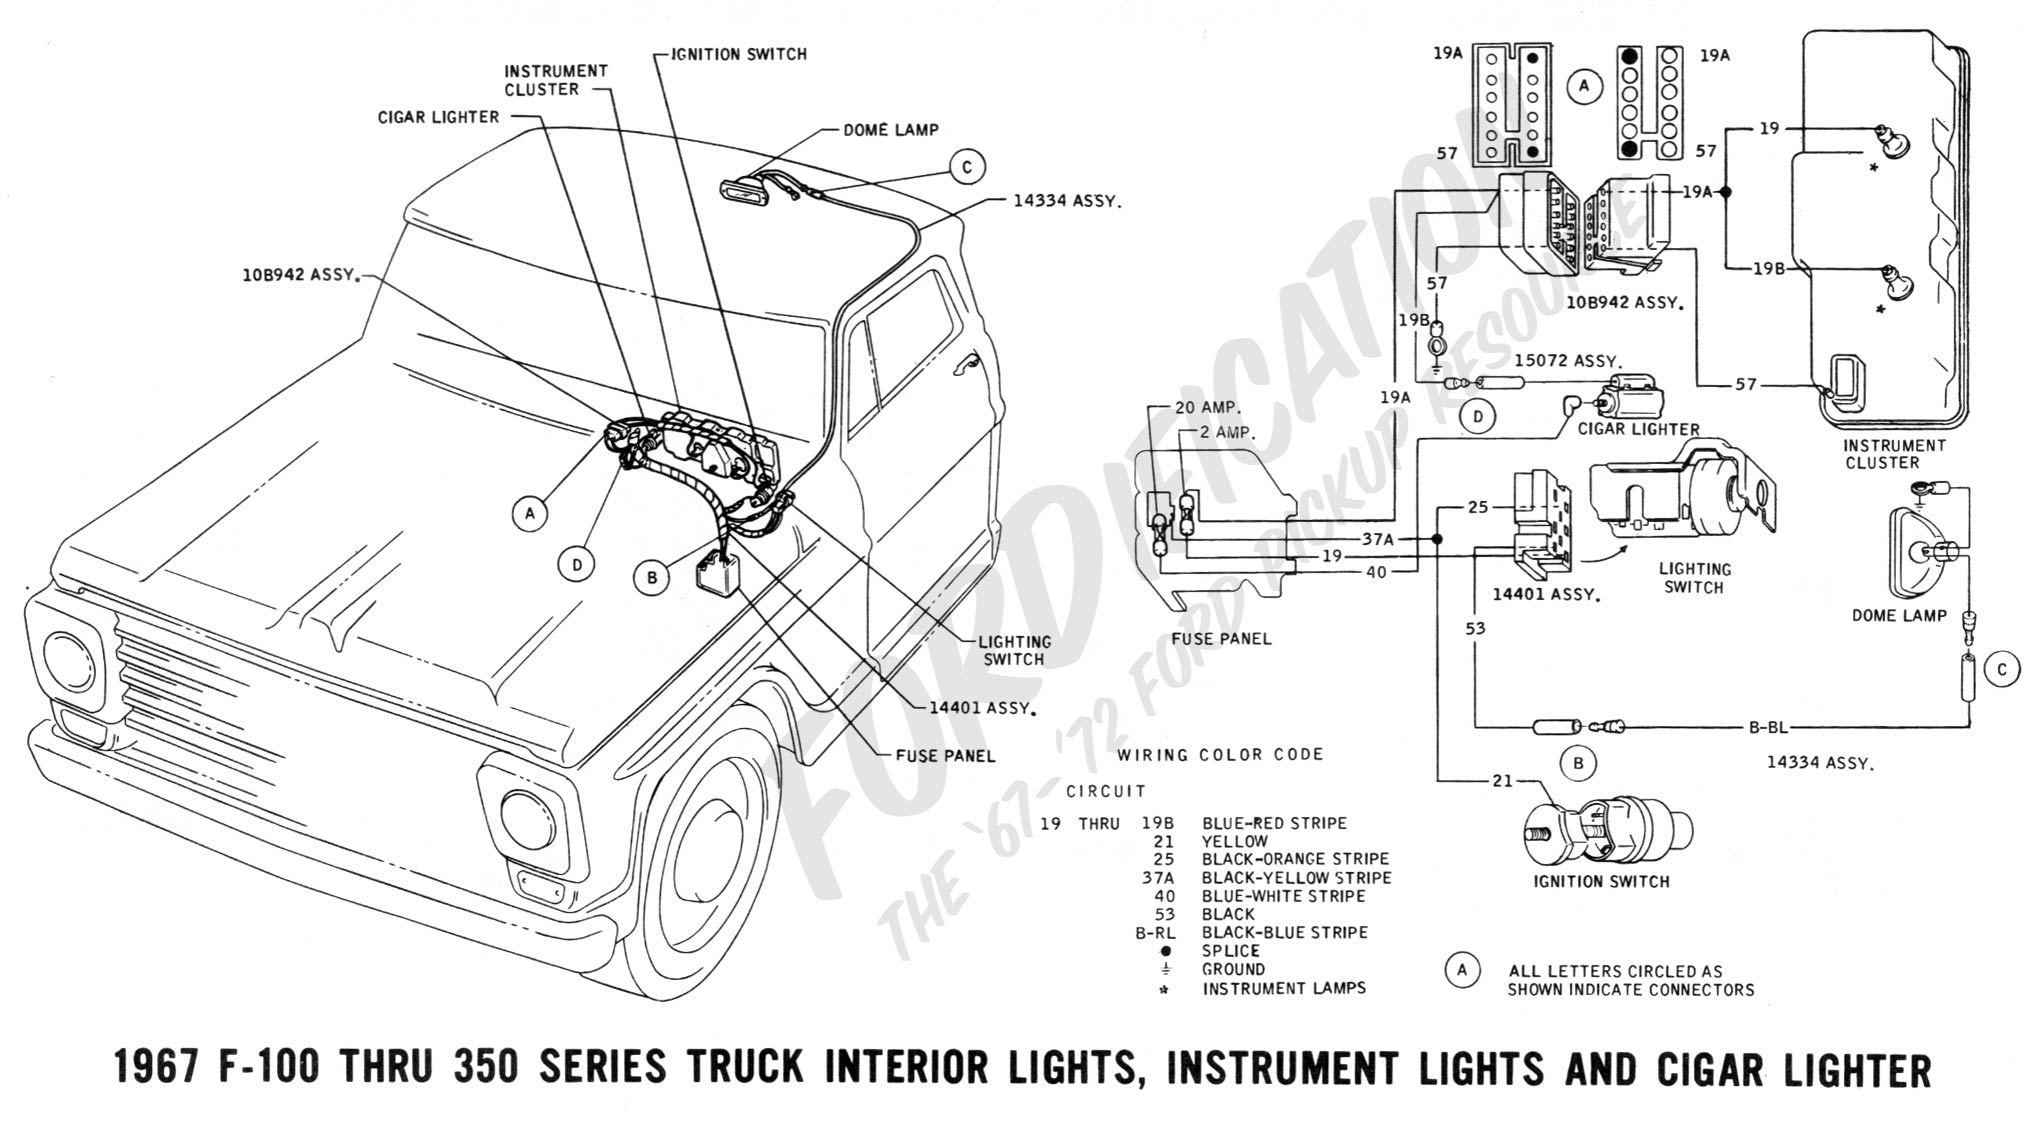 [DIAGRAM] 1974 Ford F 250 Ignition Switch Wiring Diagram